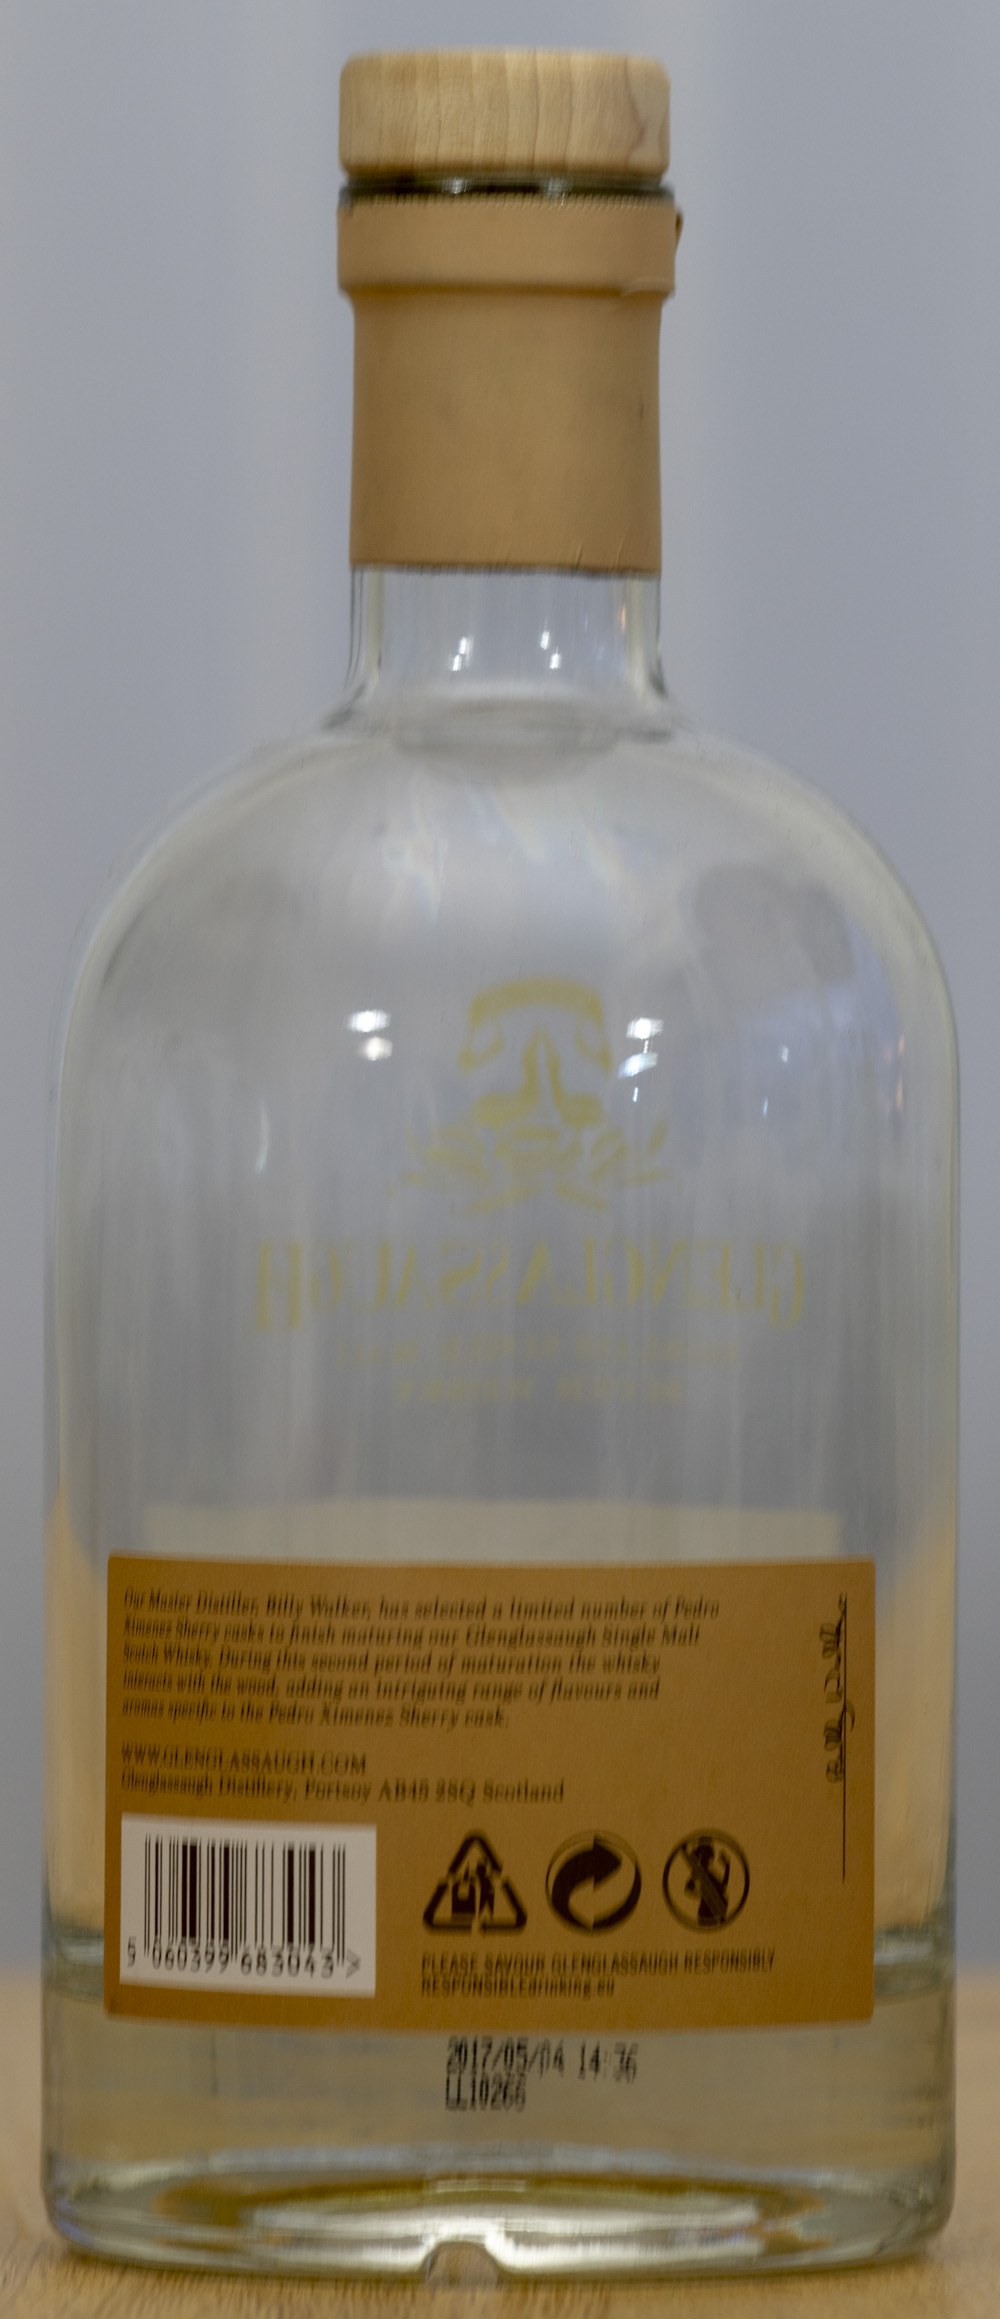 Billede: PHC_1532 - Glenglassaugh - bottle back.jpg